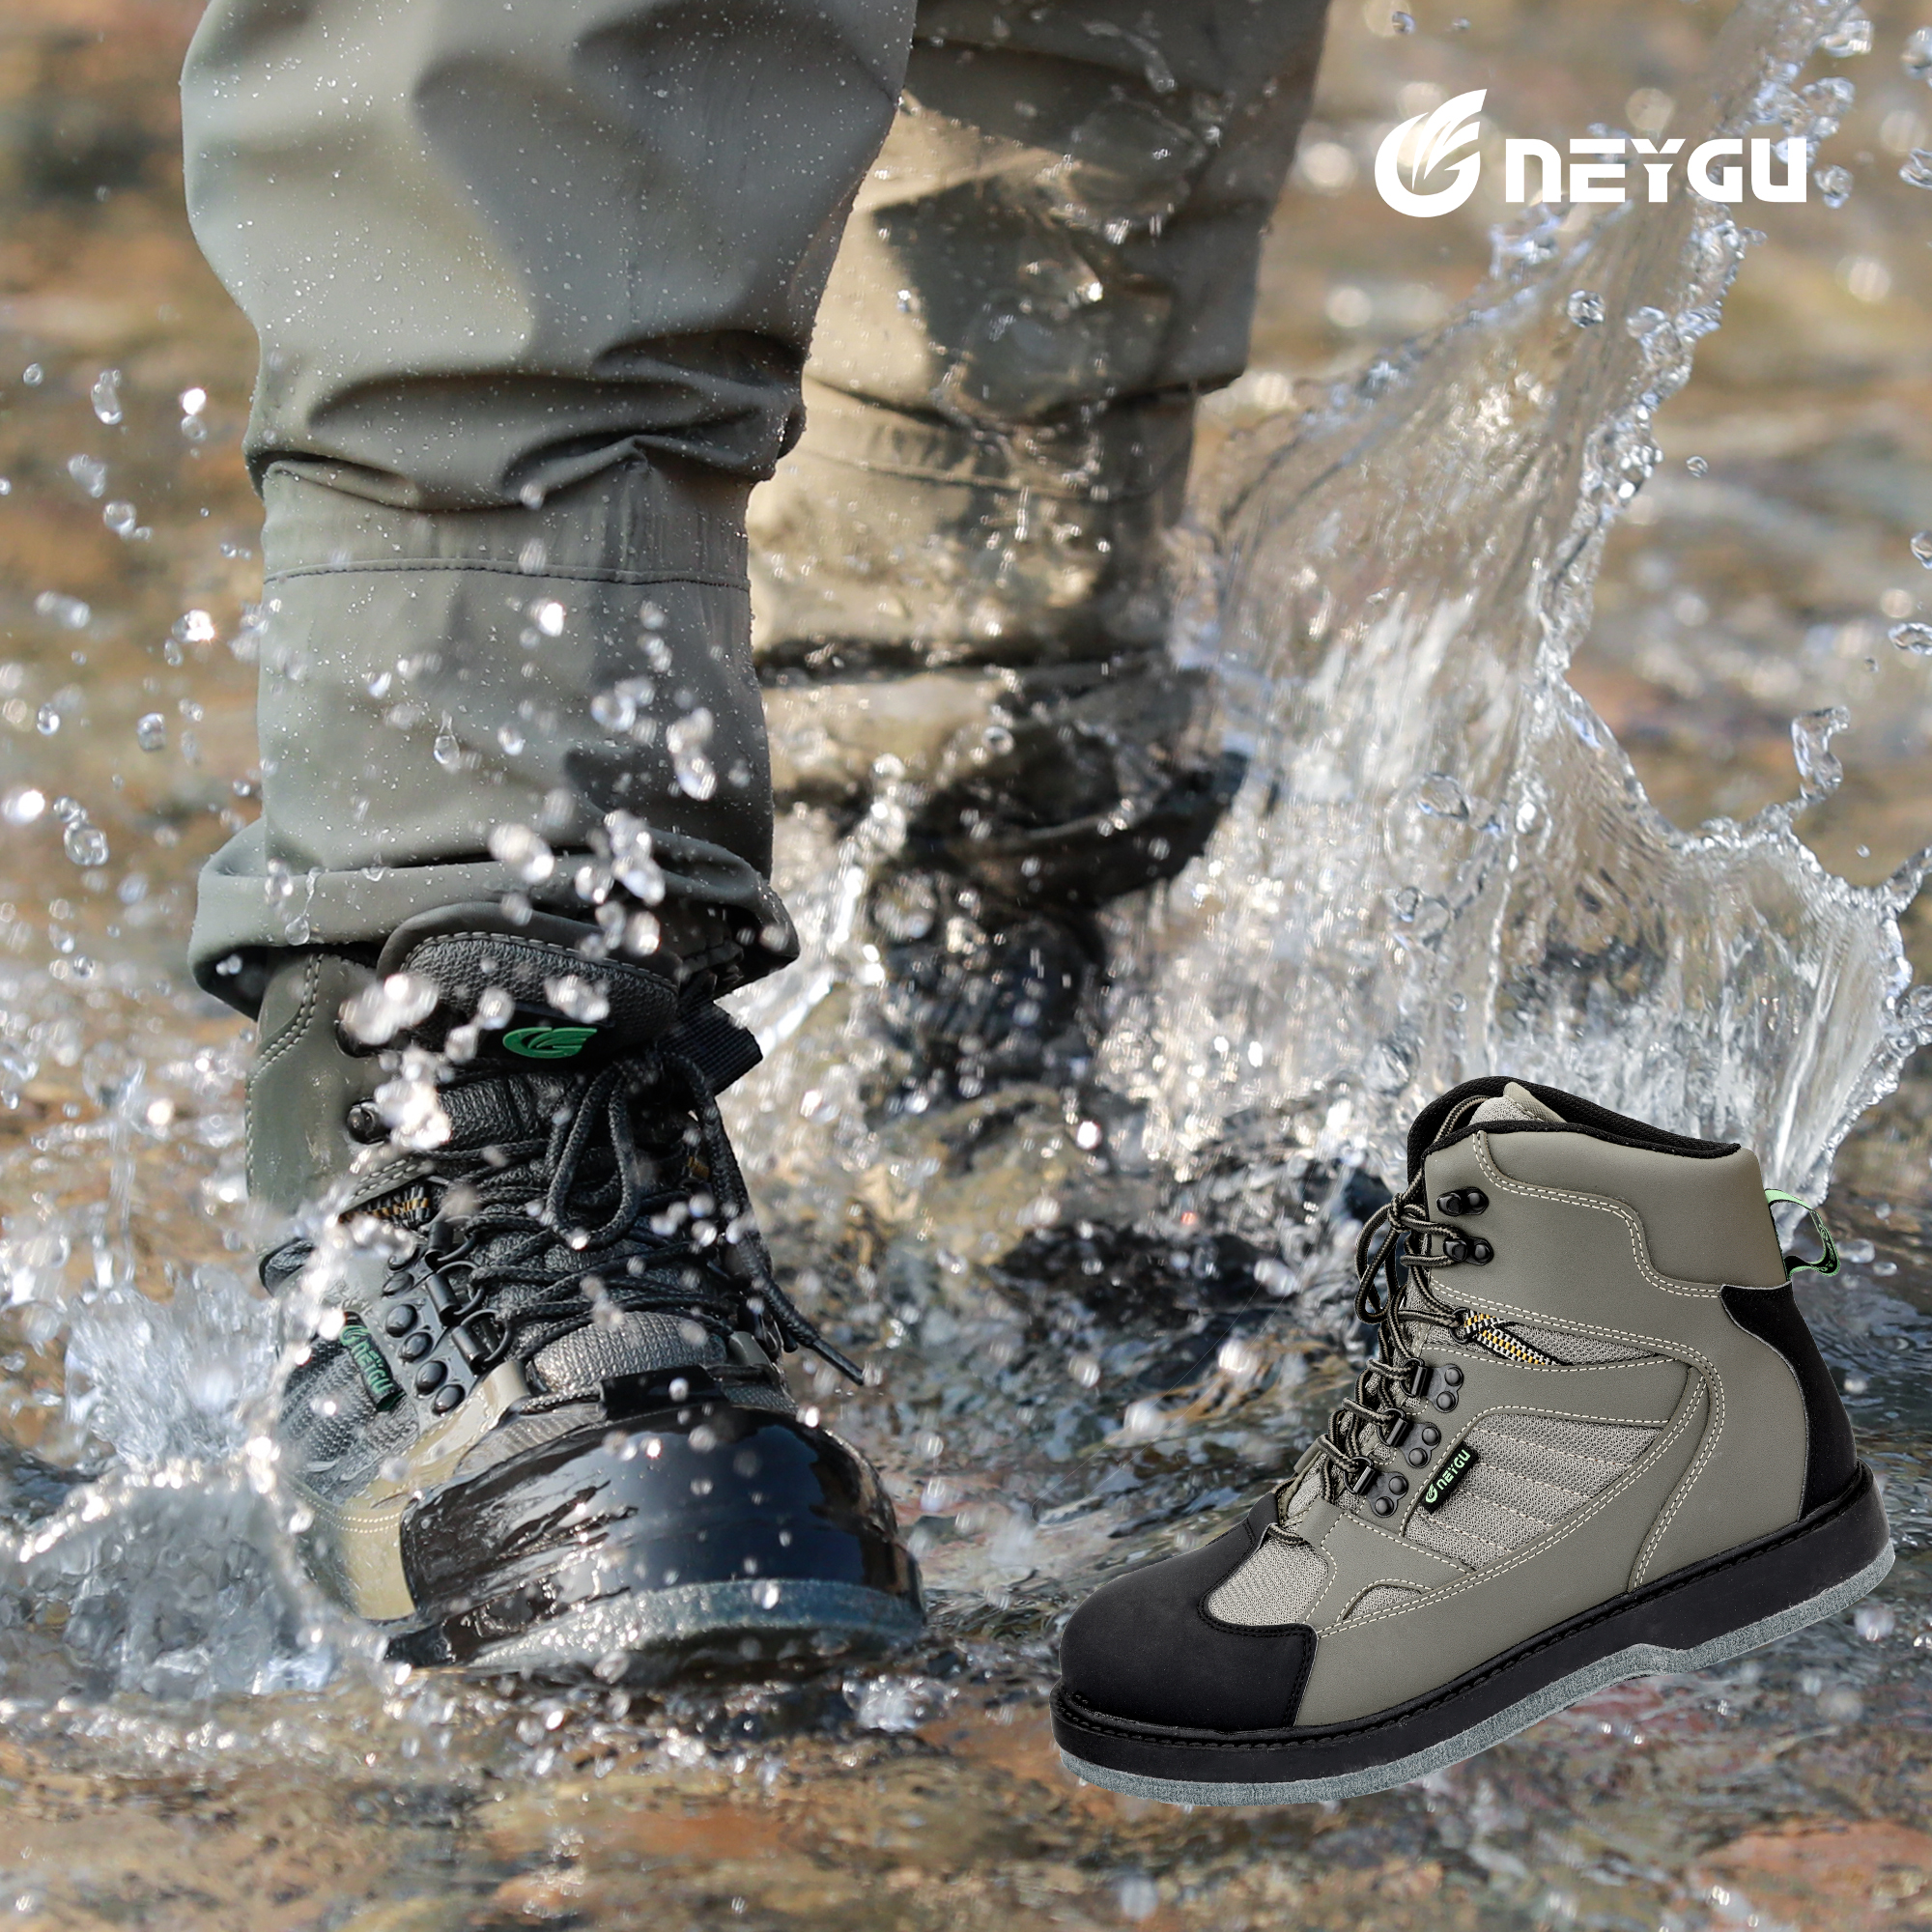 NEYGU 2019 NEW style outdoor wading boots for uni sex adult, wear resisting fishing wader shoes with felt sole-in Upstream Shoes from Sports & Entertainment    1